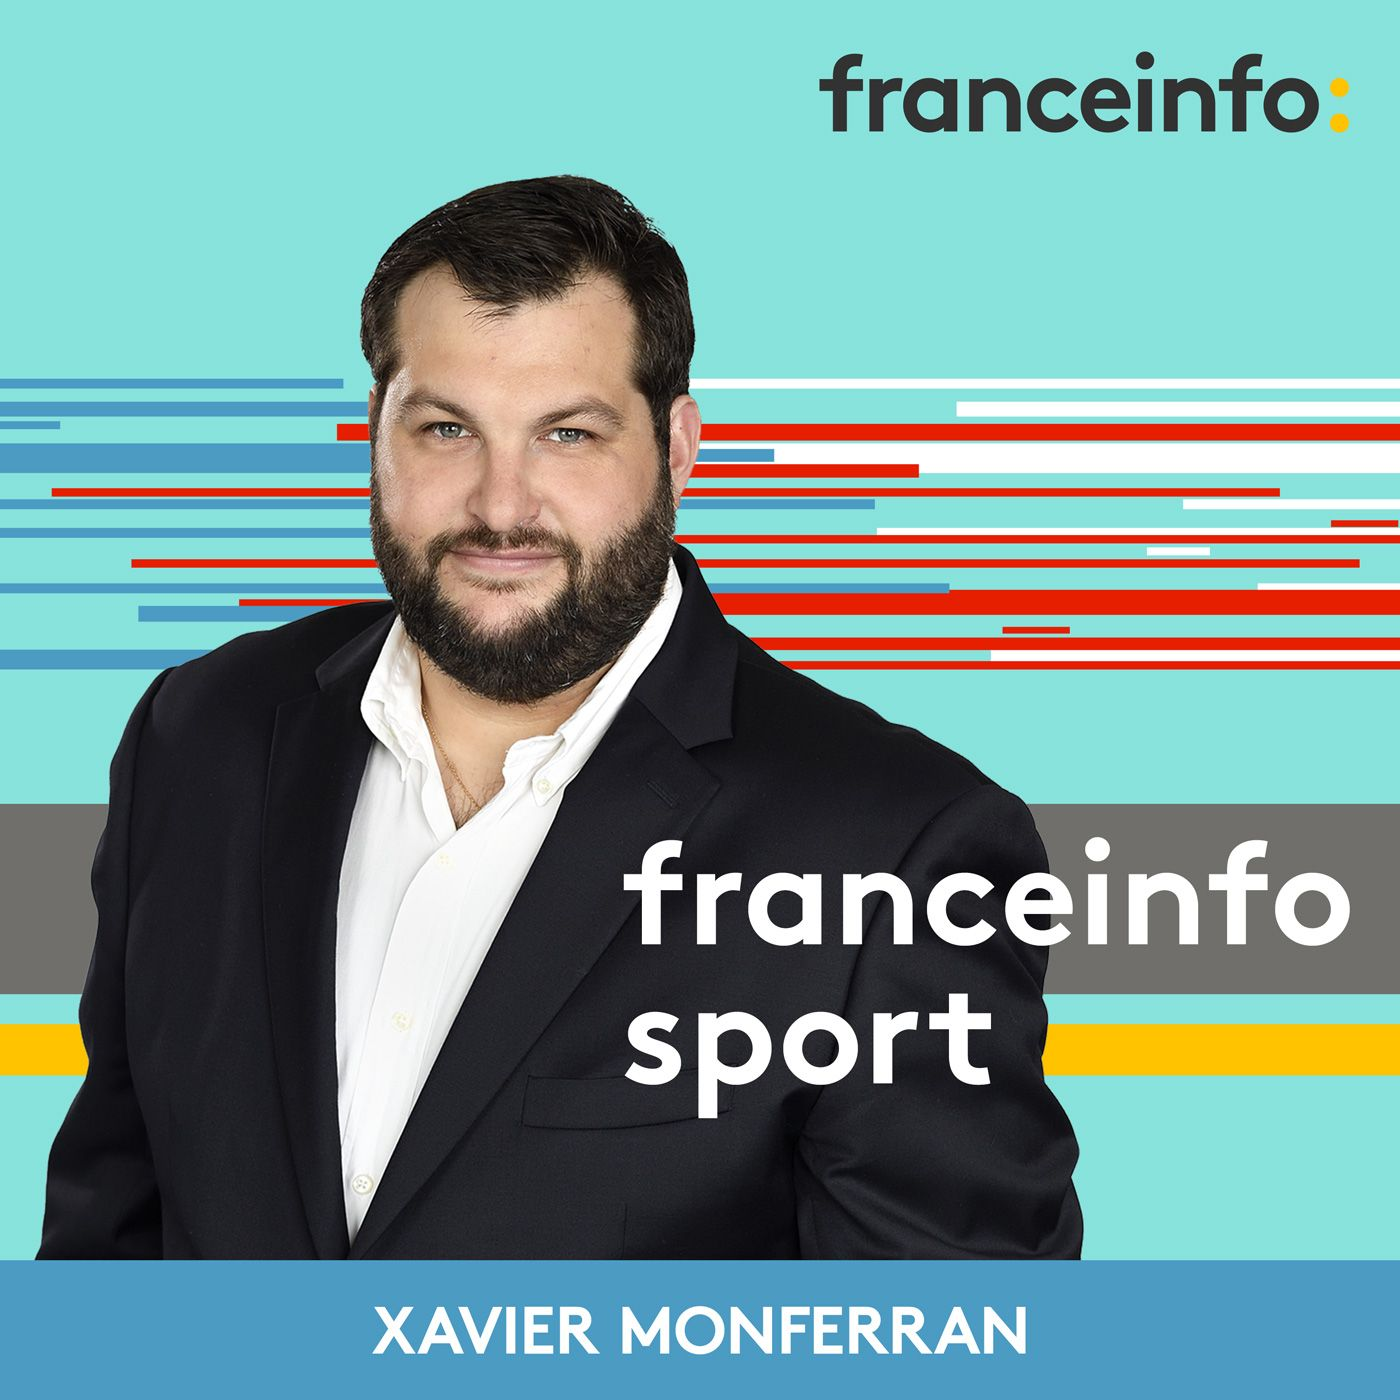 Image 1: franceinfo sports